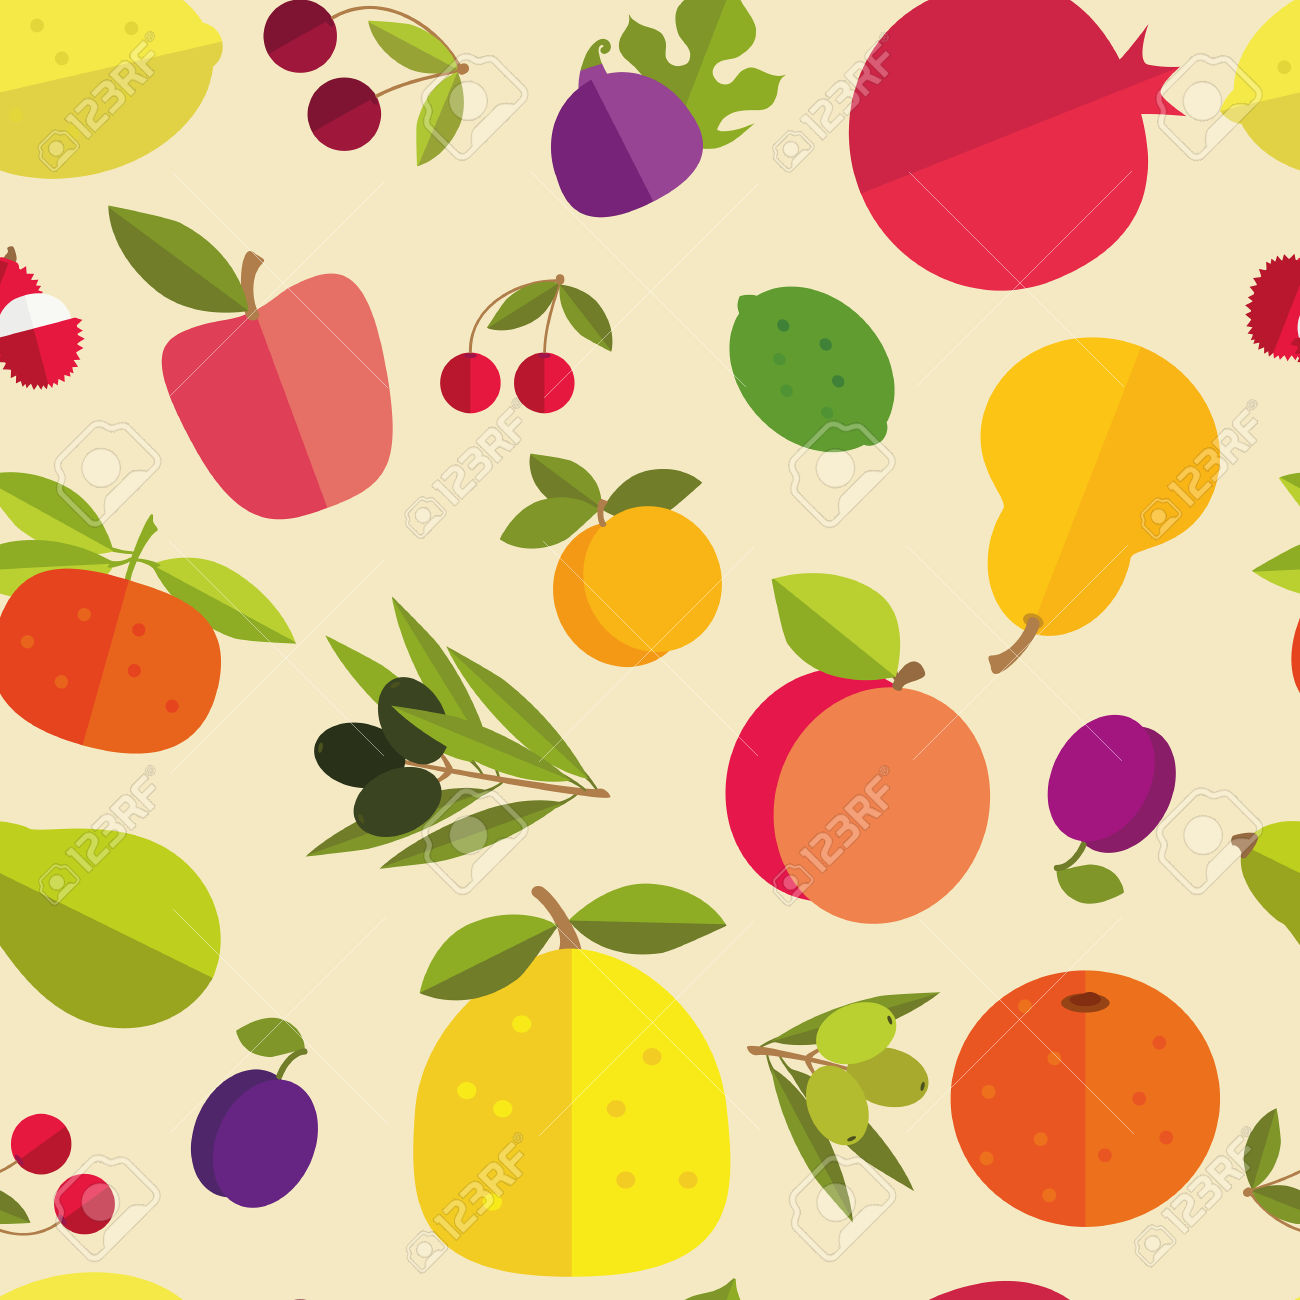 Pome Fruits Stock Photos Images. Royalty Free Pome Fruits Images.